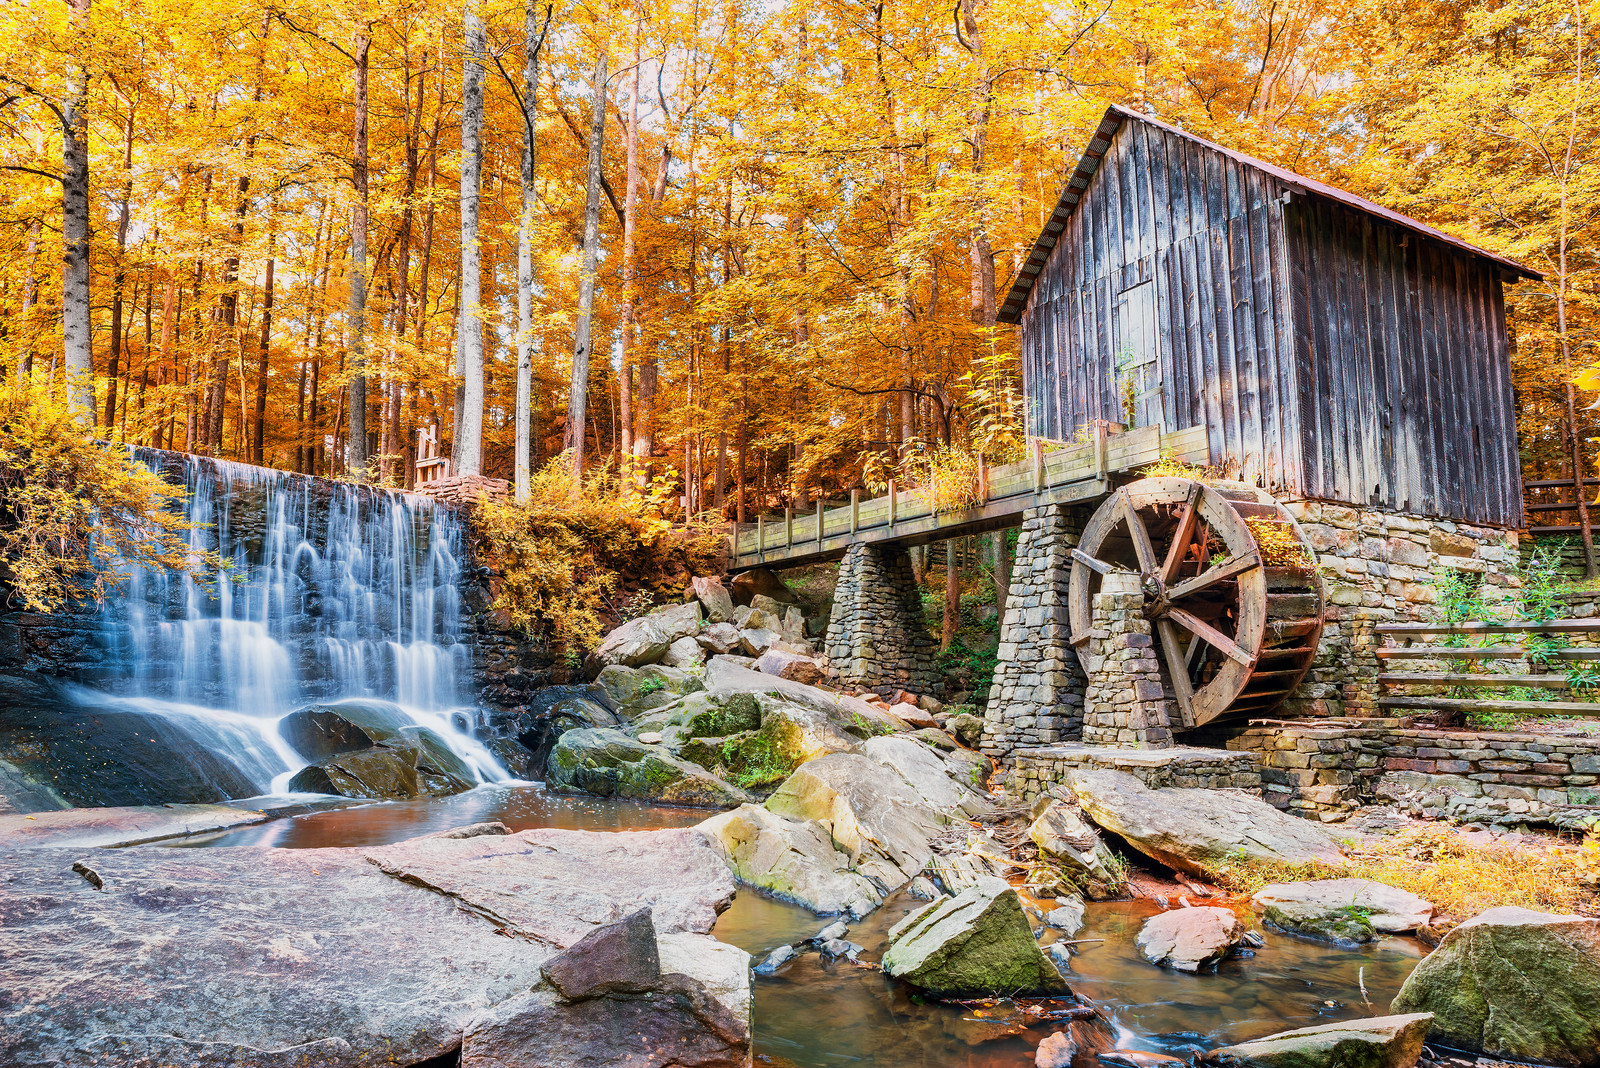 Autumn historic mill with waterfall surrounded by golden trees in Marietta City